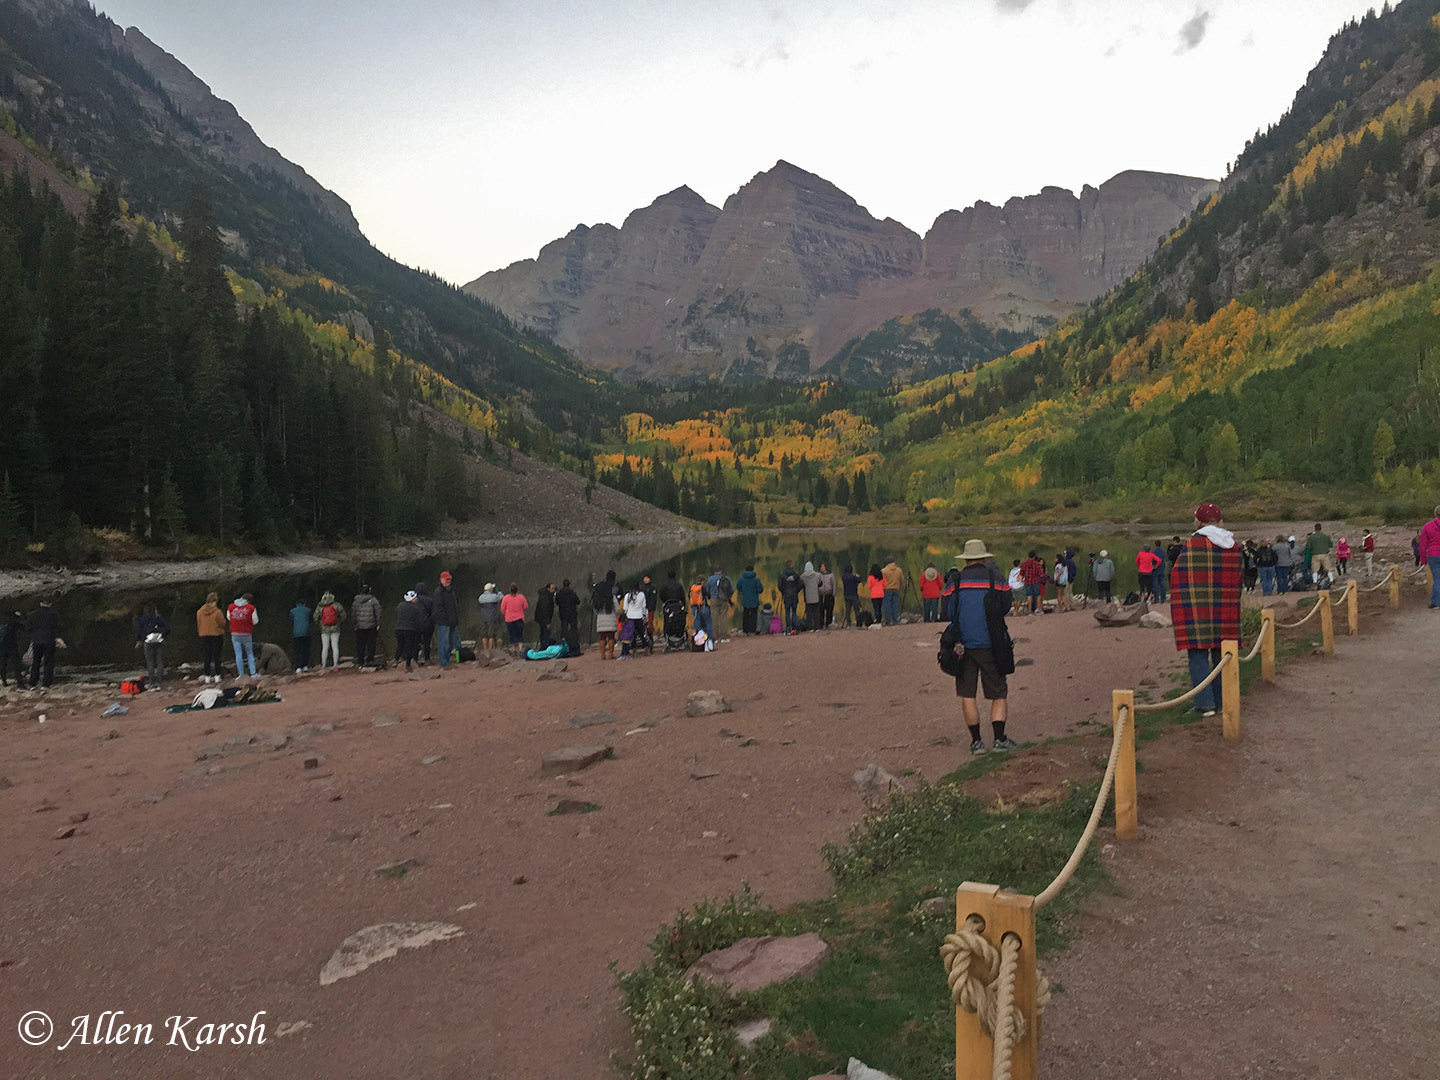 CO_MaroonBells-AllenKarsh.jpg